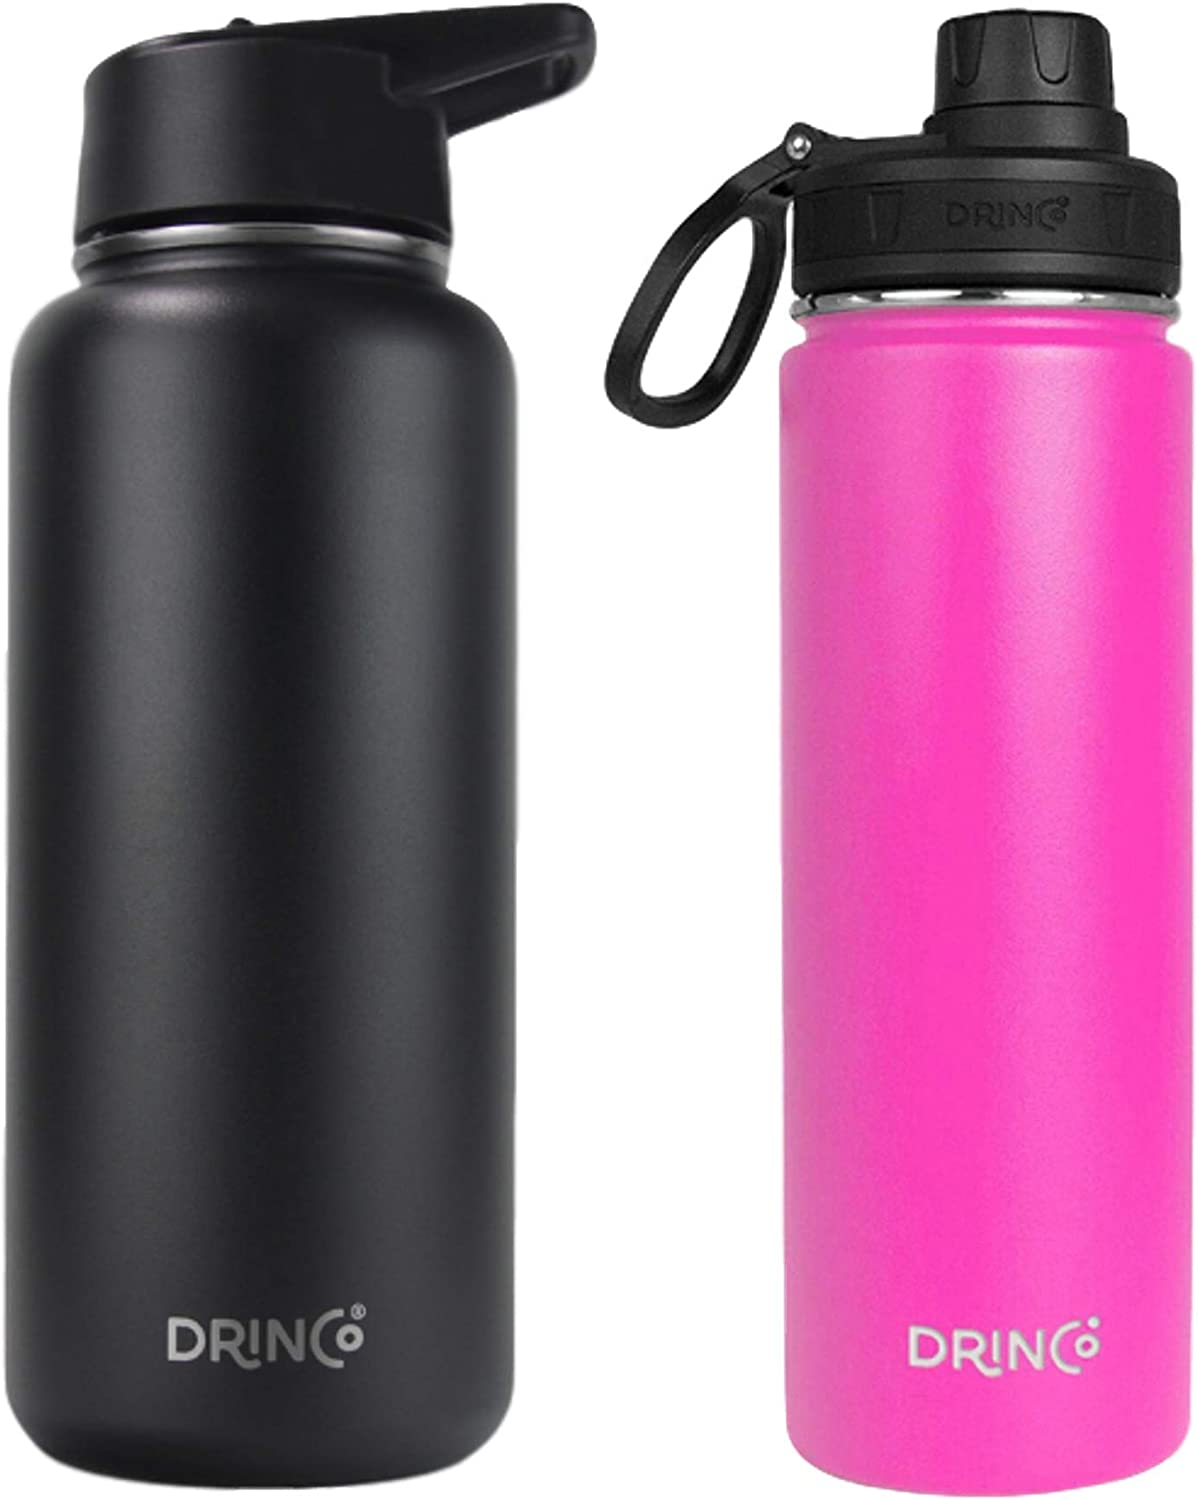 Drinco - Stainless Steel Water Bottle Double Wall Vacuum Insulated   Perfect for Traveling Camping Hiking (Combo 32oz + 20oz, Black & Island Pink)